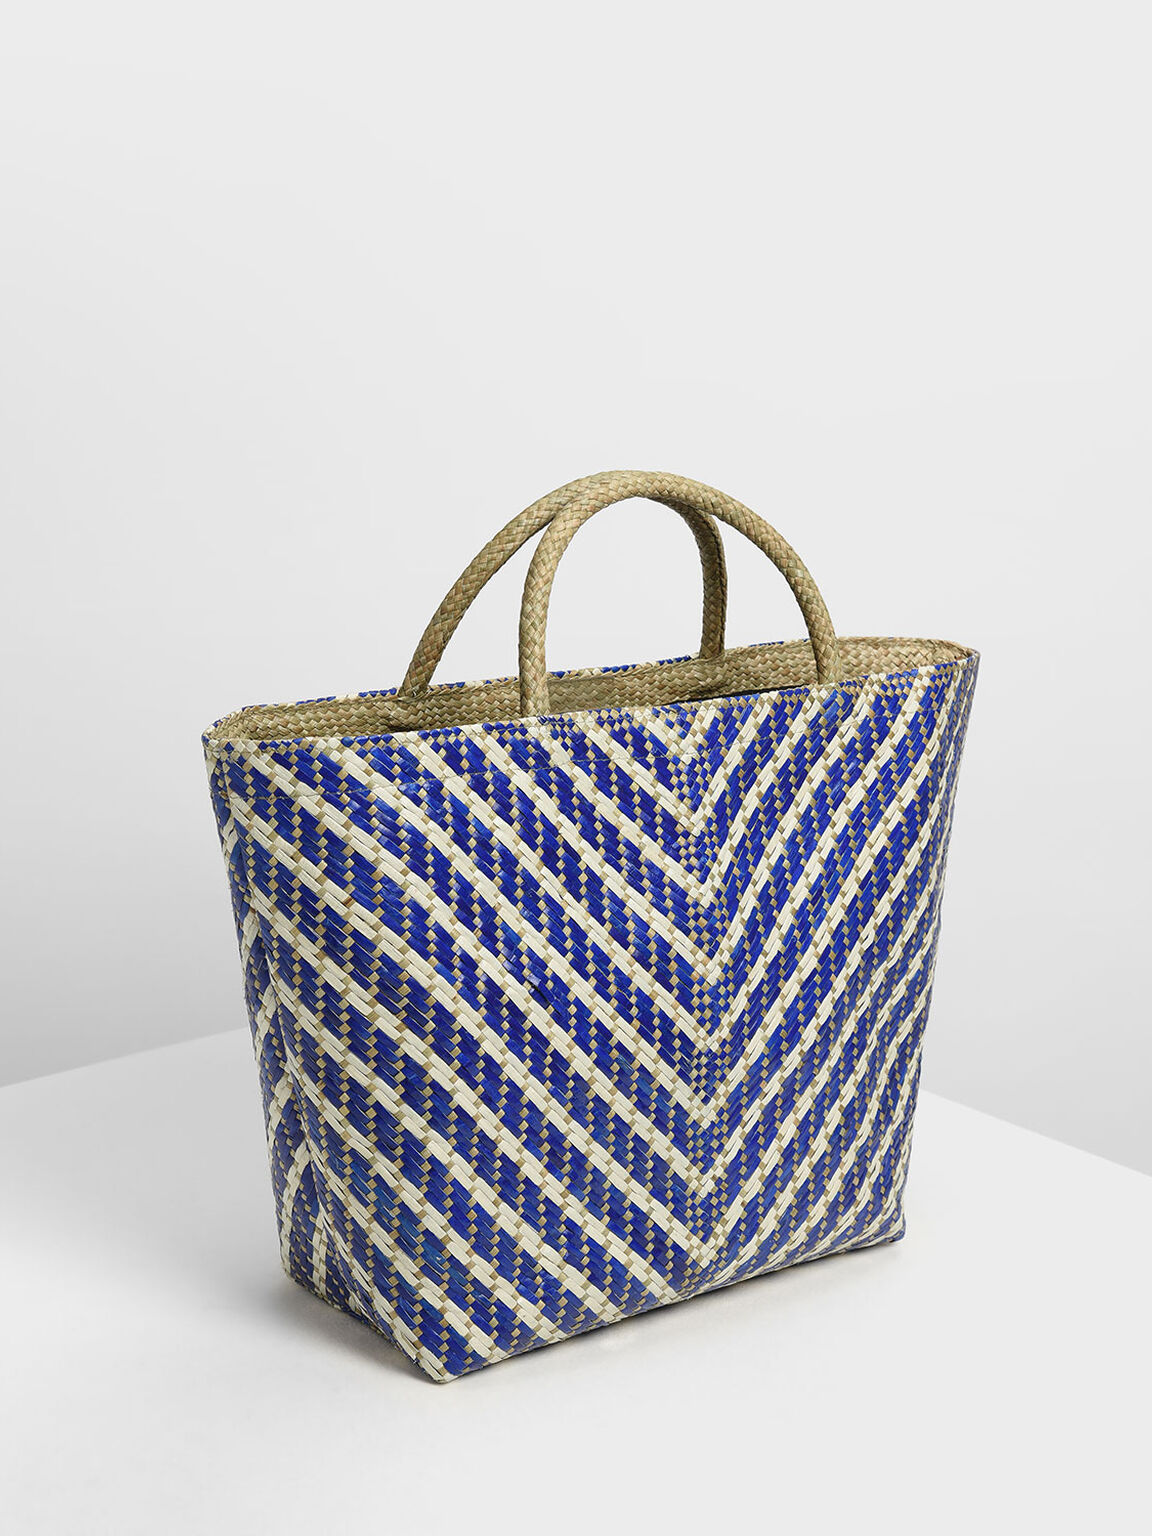 Purpose Collection - Handwoven Banig Tote Bag, Dark Blue, hi-res